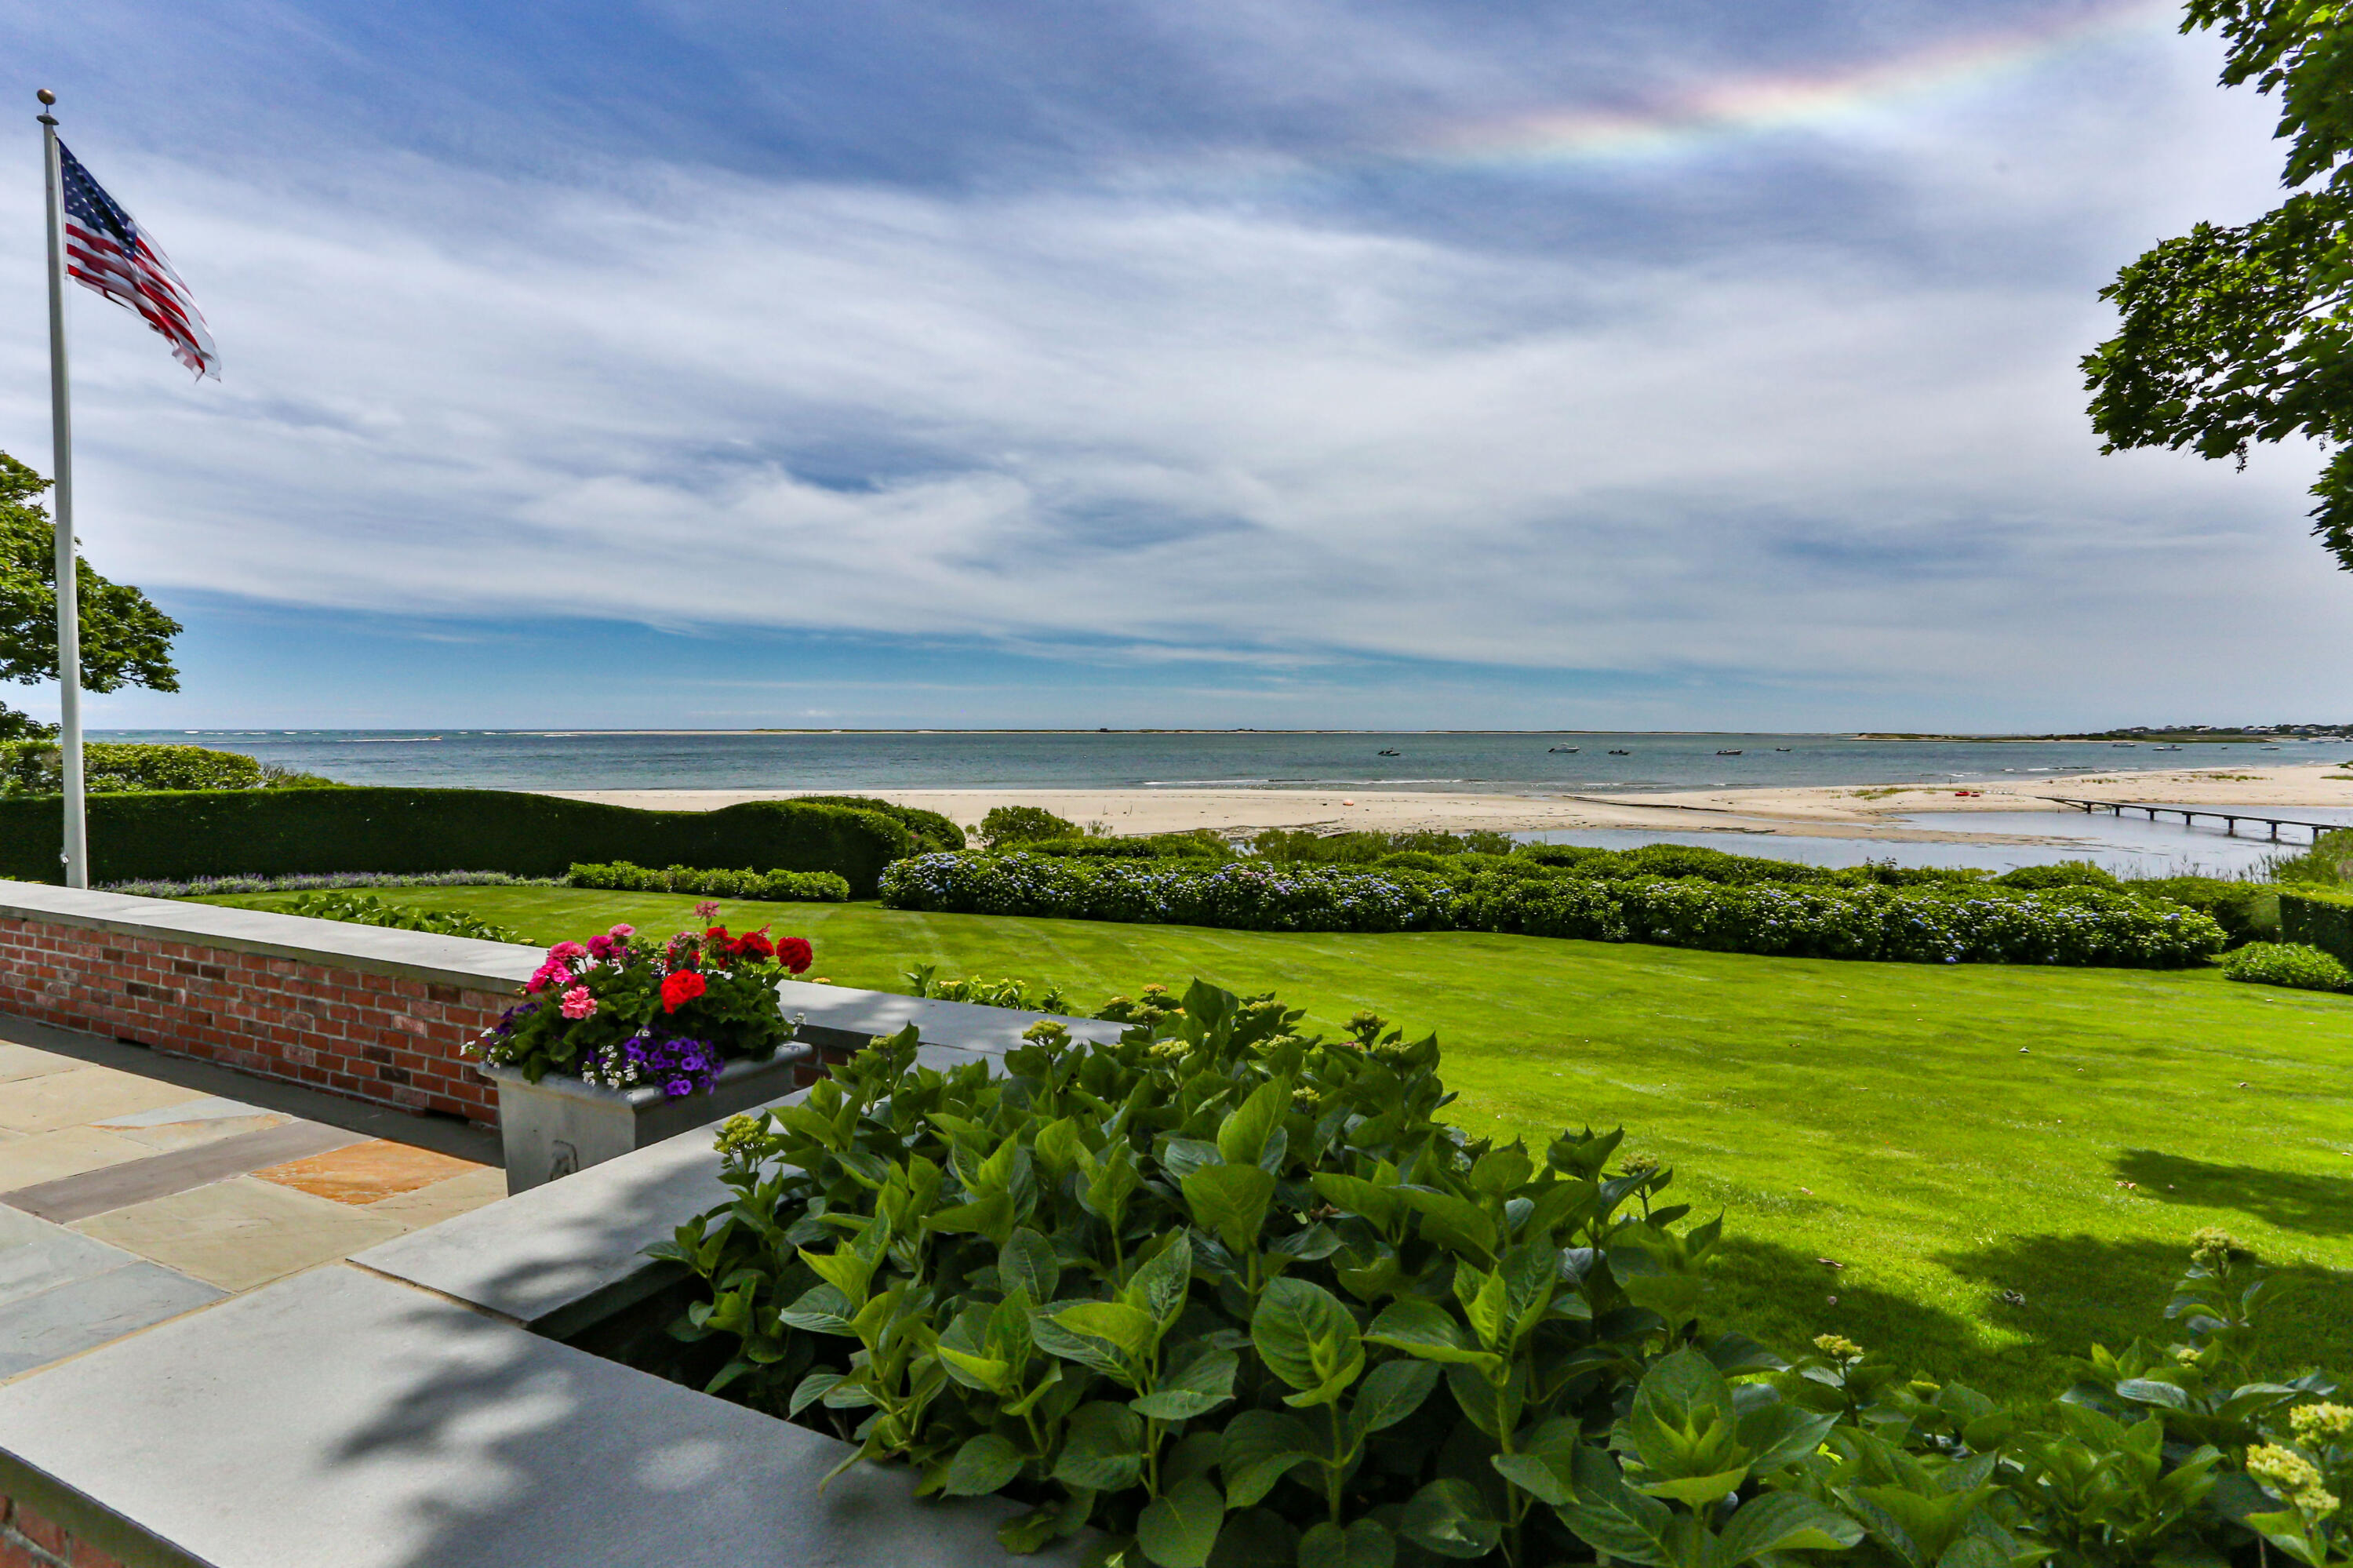 116 Old Wharf Road, North Chatham MA, 02650 sales details